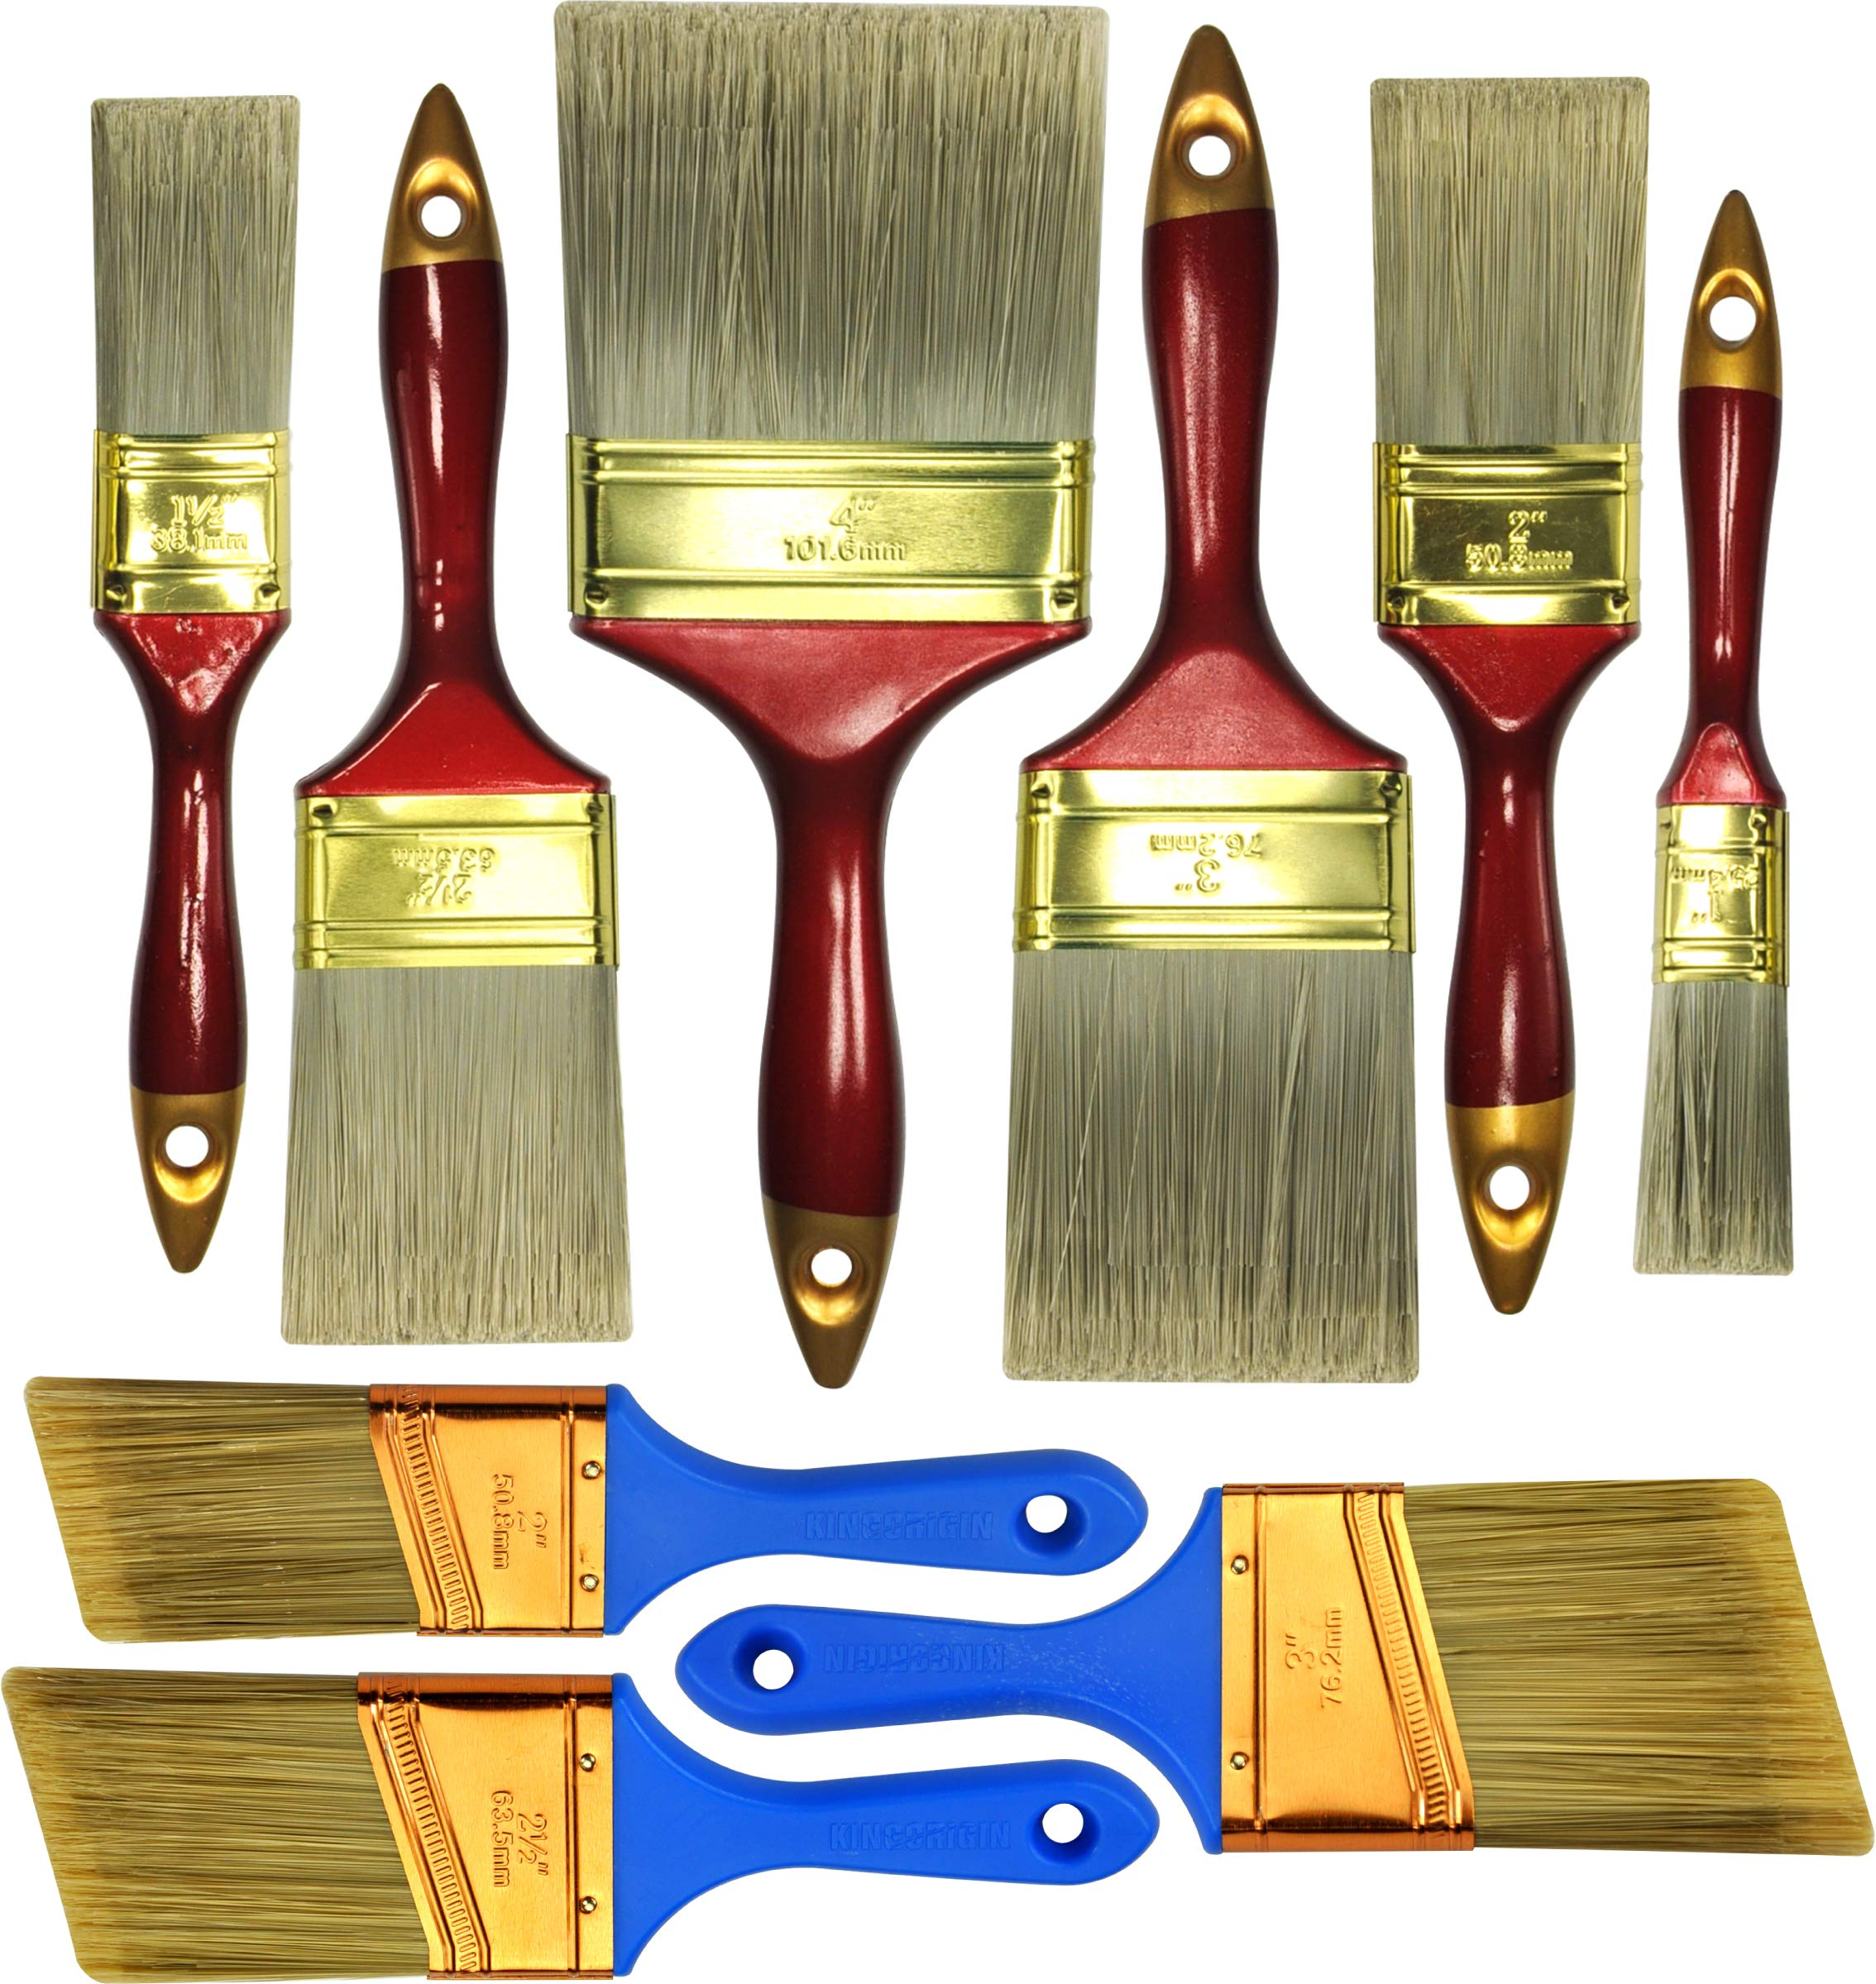 10 Piece Professional Painters Heavy Duty Paint Brush,Paint Brushes,Paint Brushes Set,Paint Brushes,Painters Tools,Painters Brush,Painters Paint Brush by Great Andrew